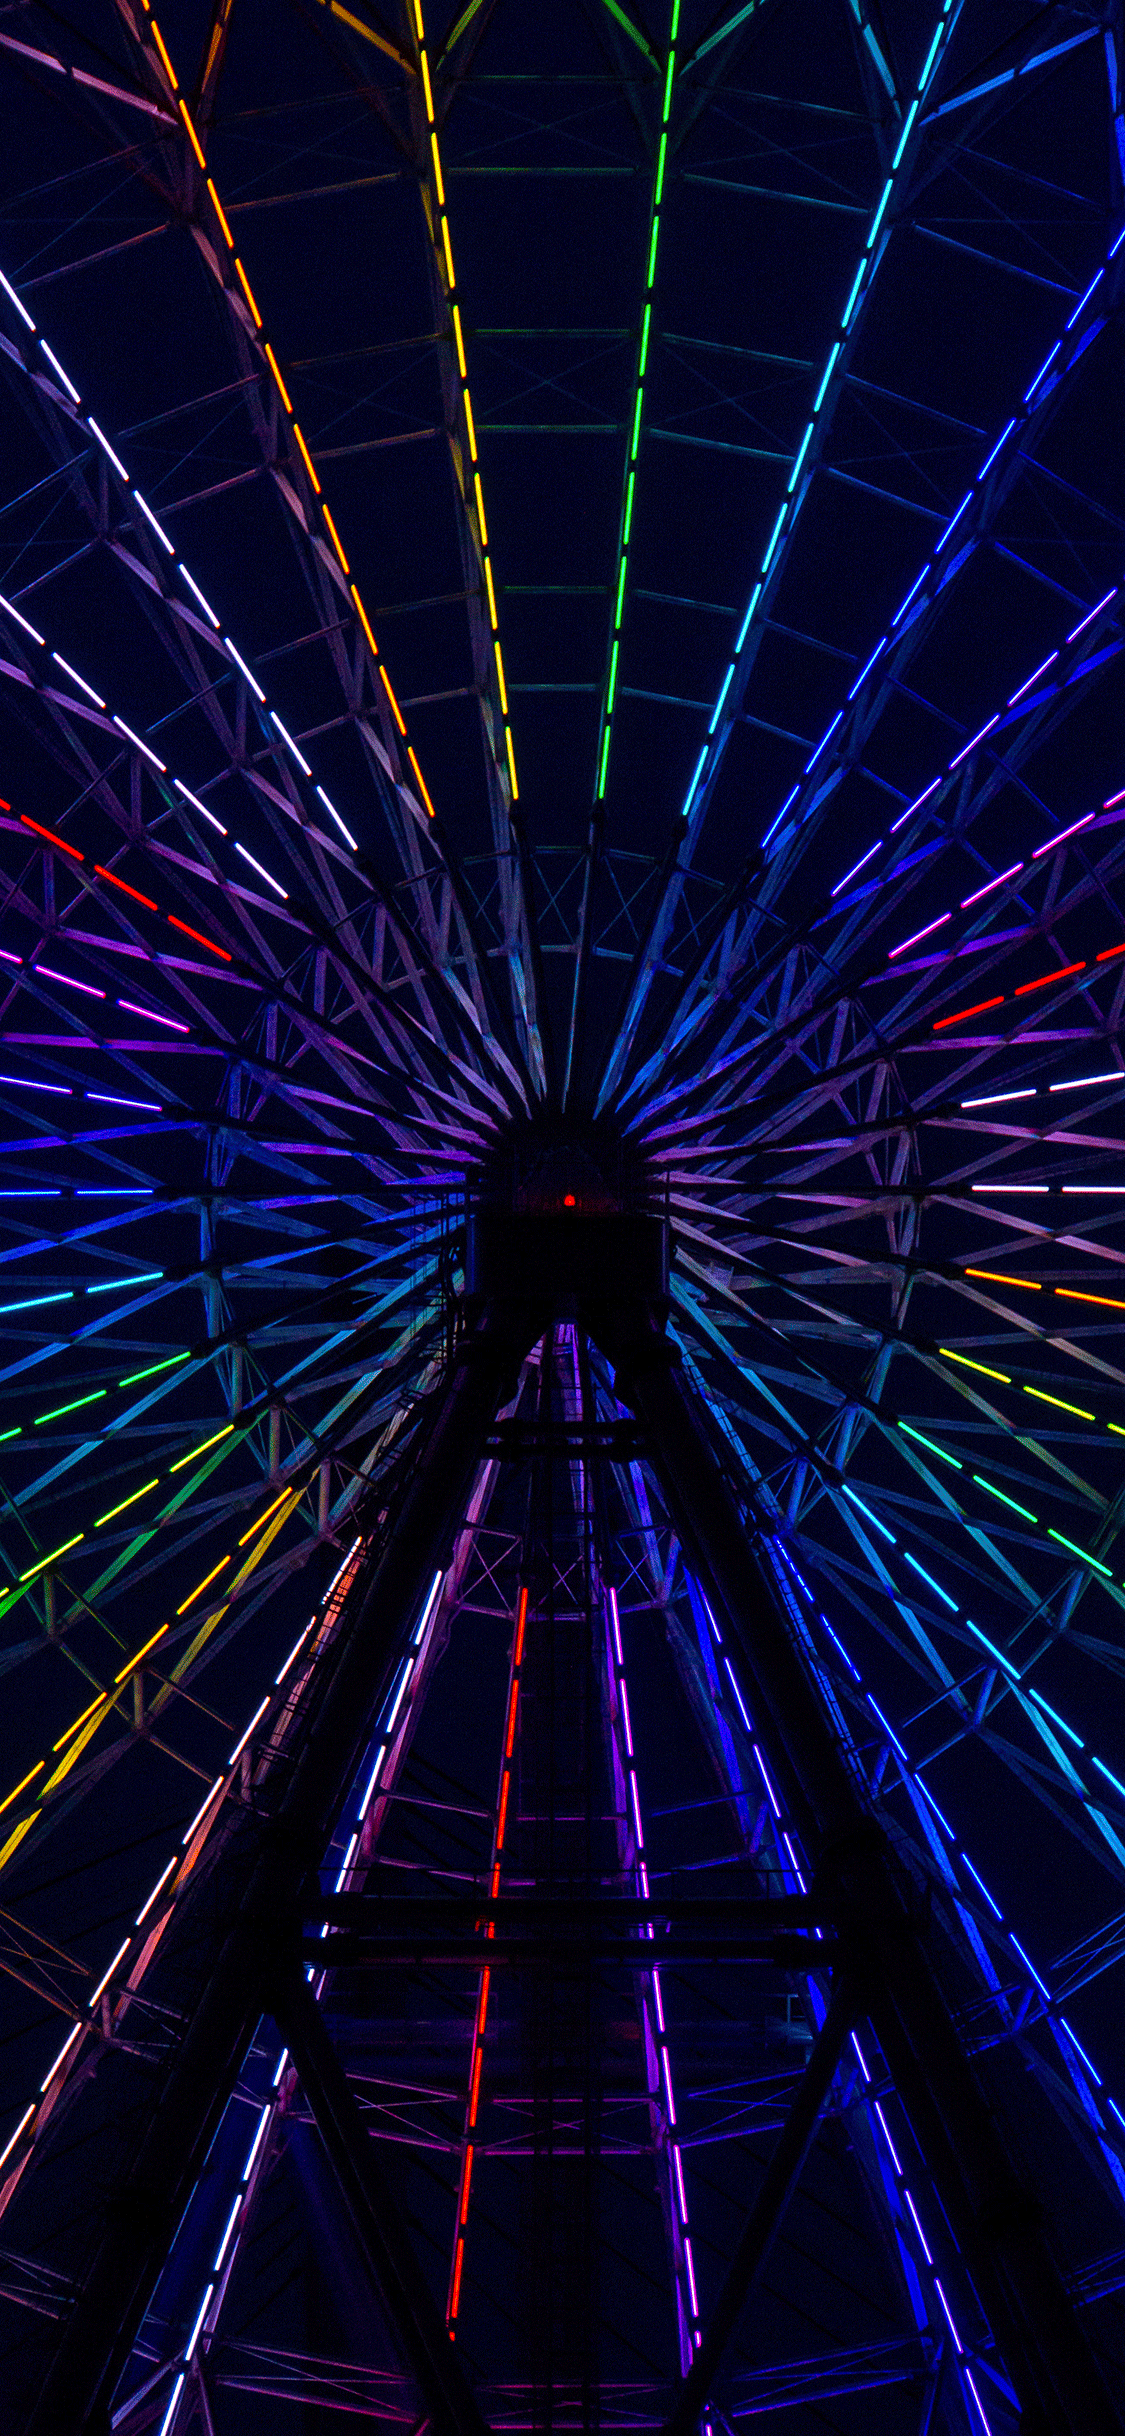 iPhone wallpaper neon wheel colorful Fonds d'écran iPhone du 03/08/2018